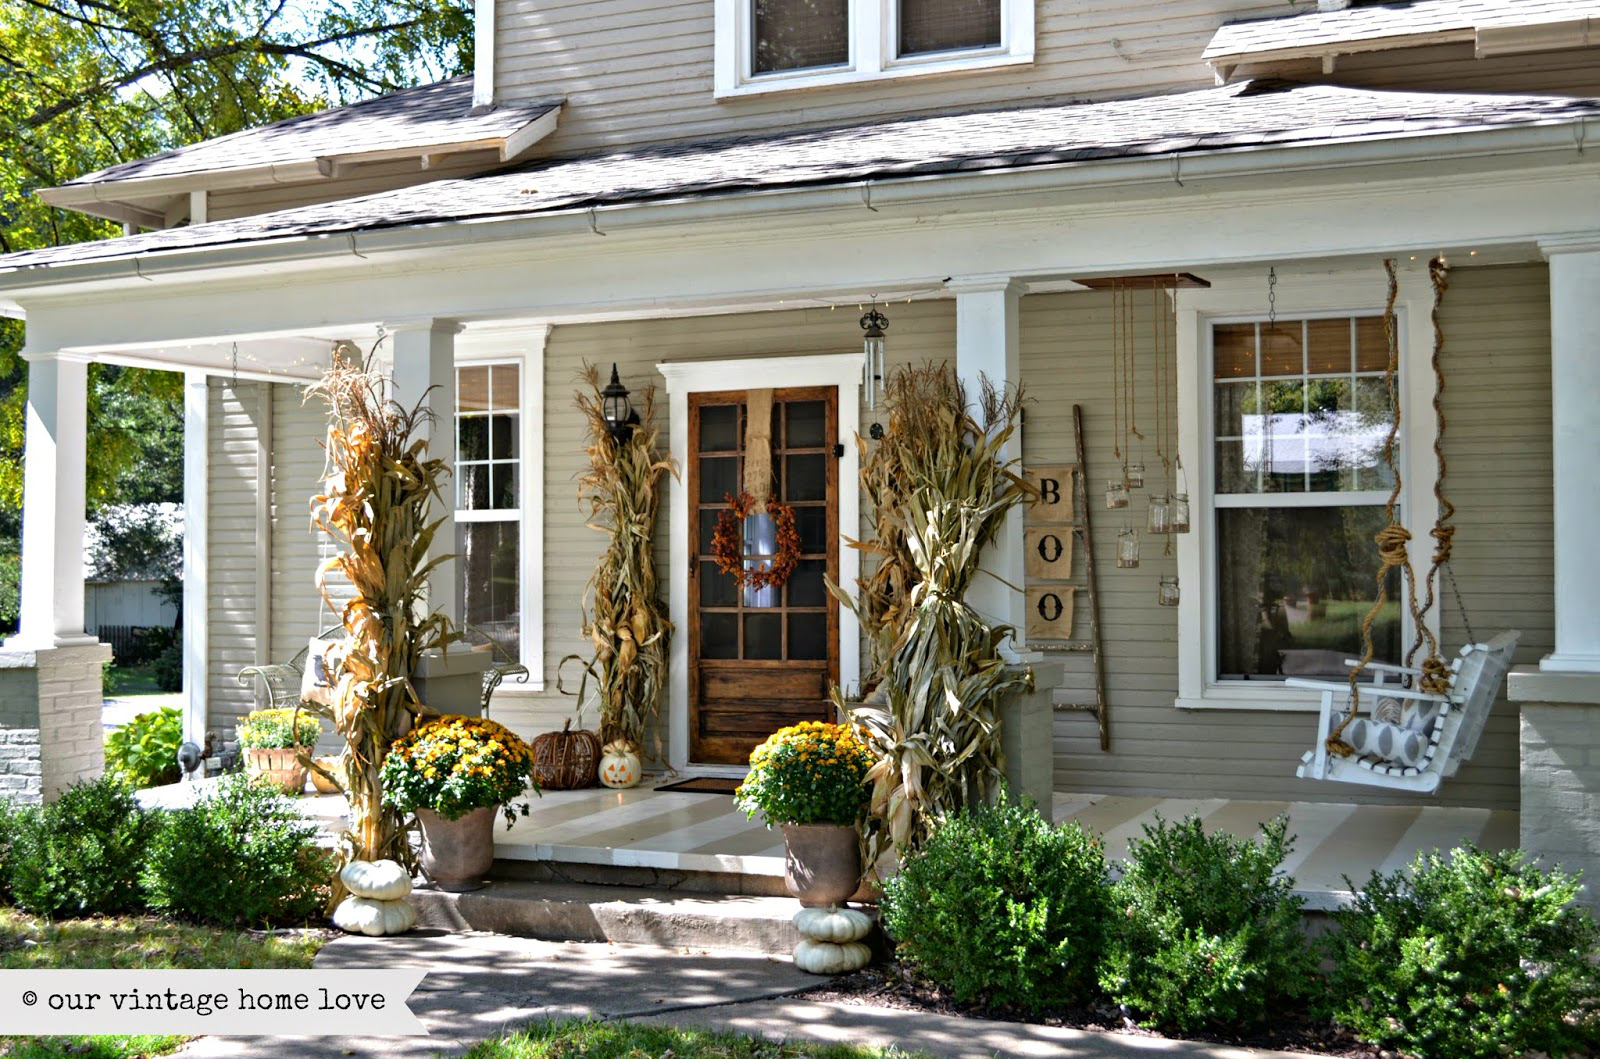 Front Porch Decorating Ideas 37 fall porch decorating ideas - ways to decorate your porch for fall